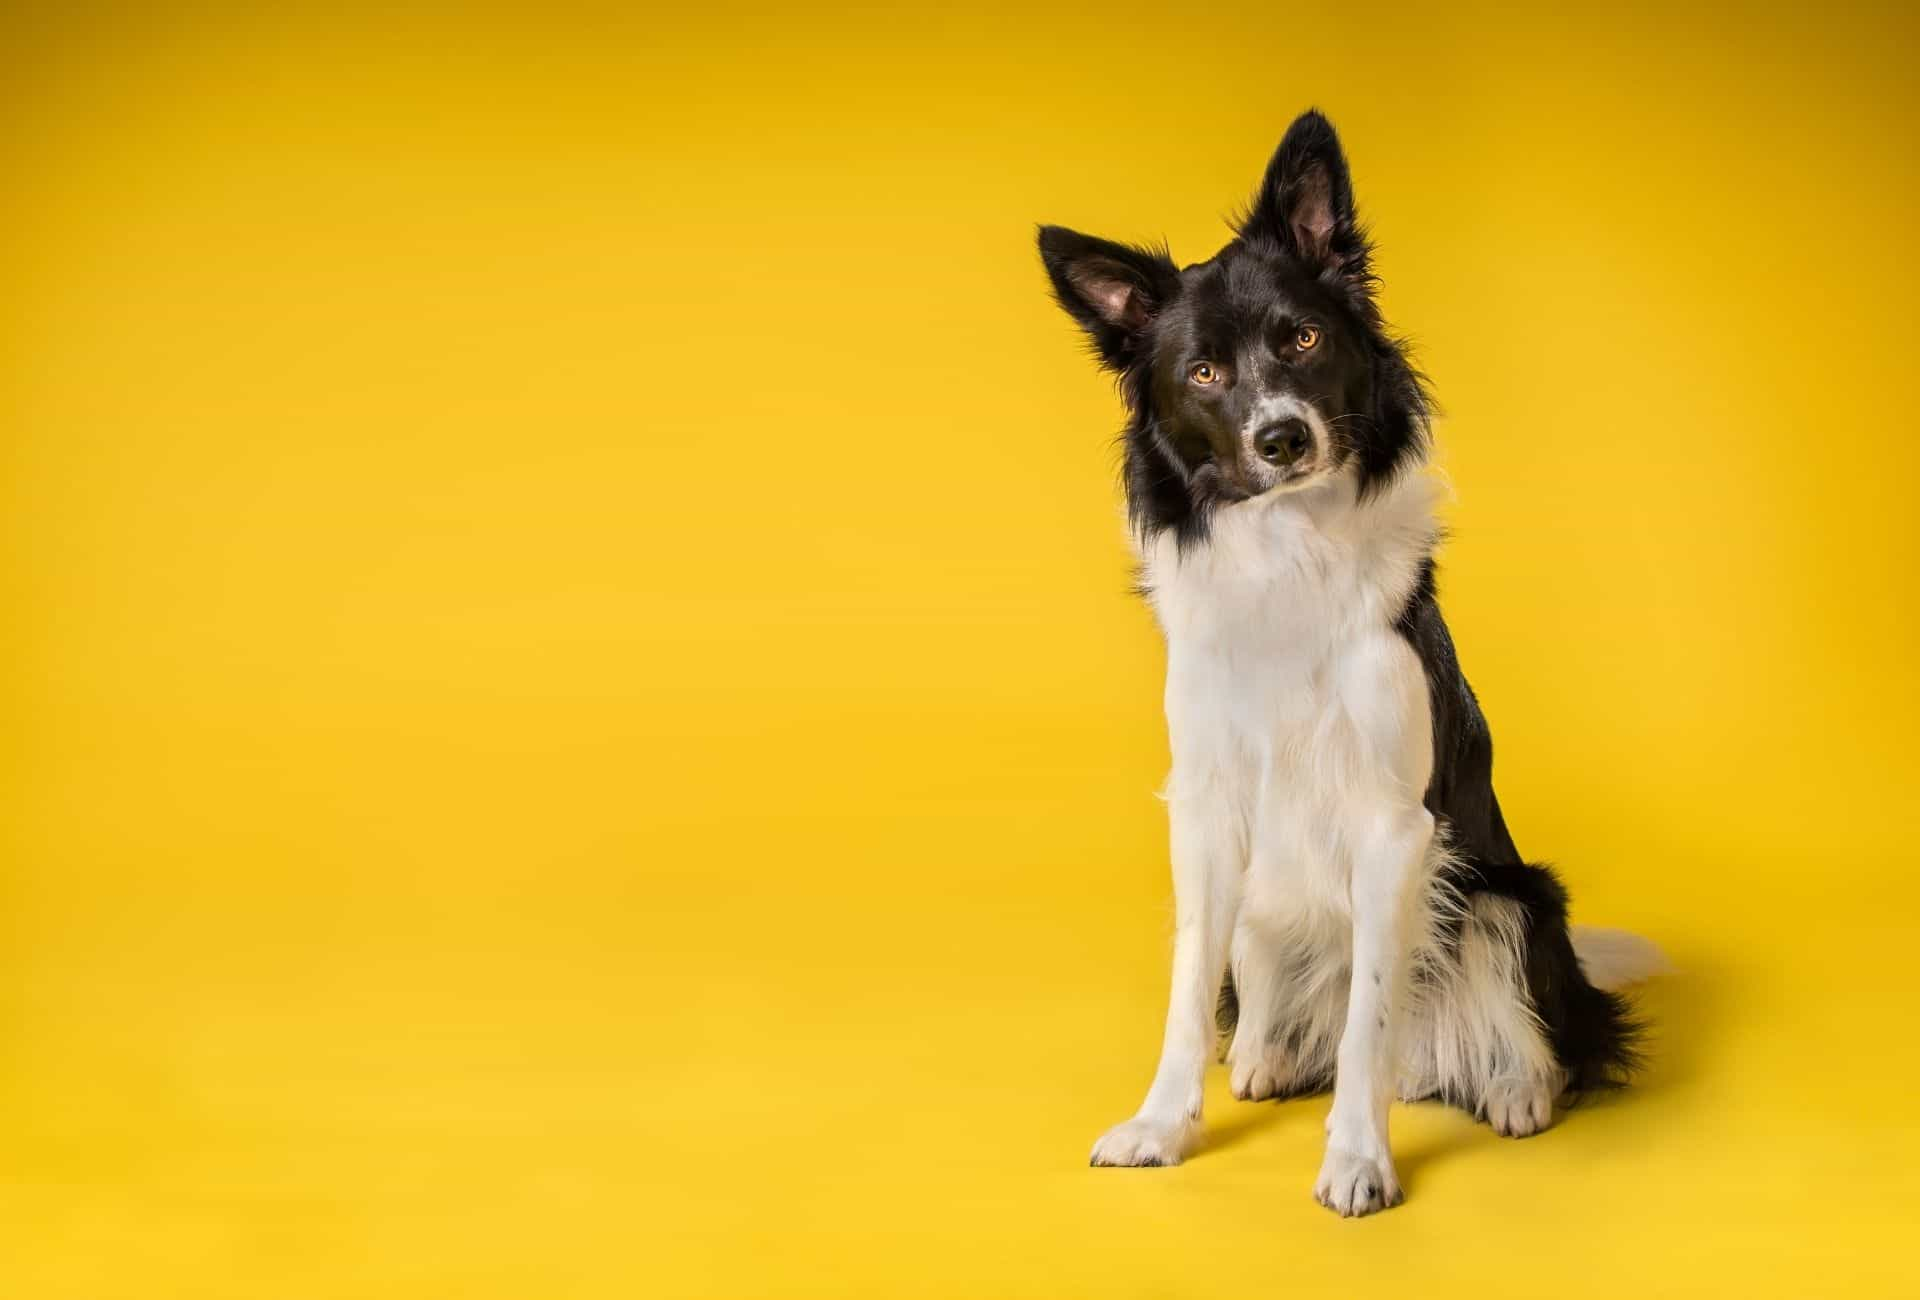 Black and white Border Collie on yellow background.